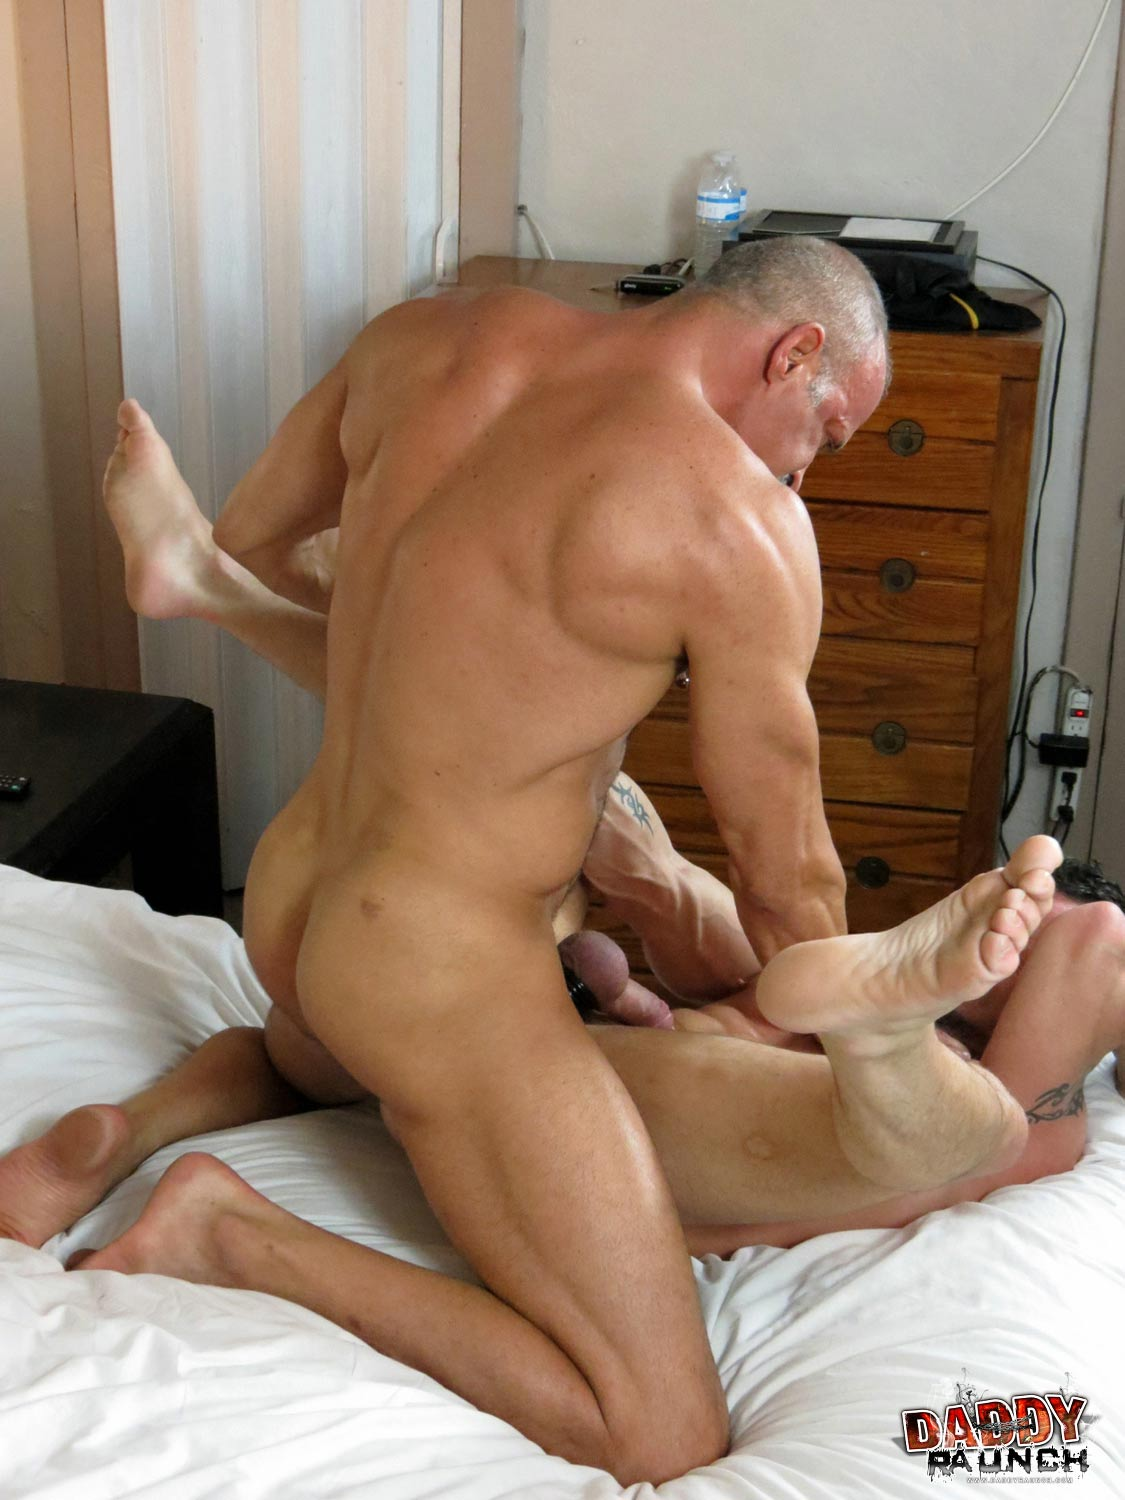 gay porn paysite men over 50